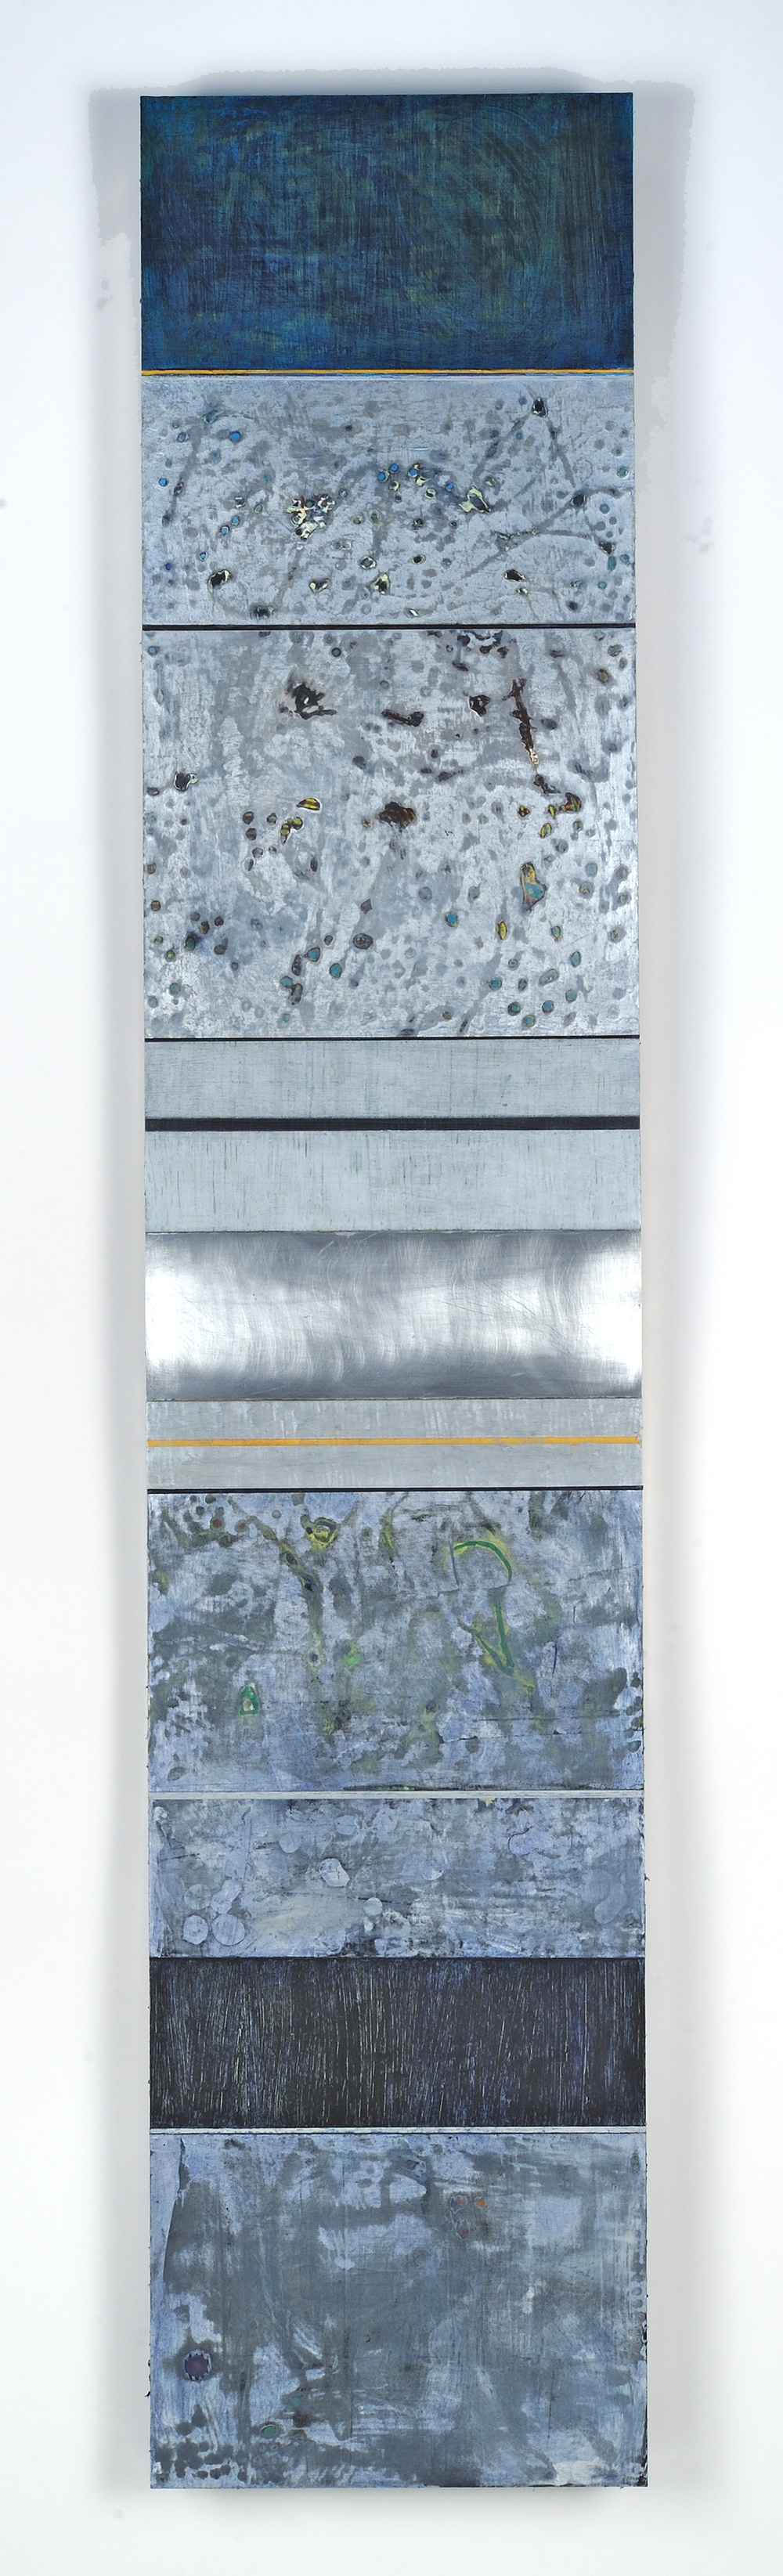 Strata 15 -1, Acrylic and Wax on Aluminum Panel, 58 x 12